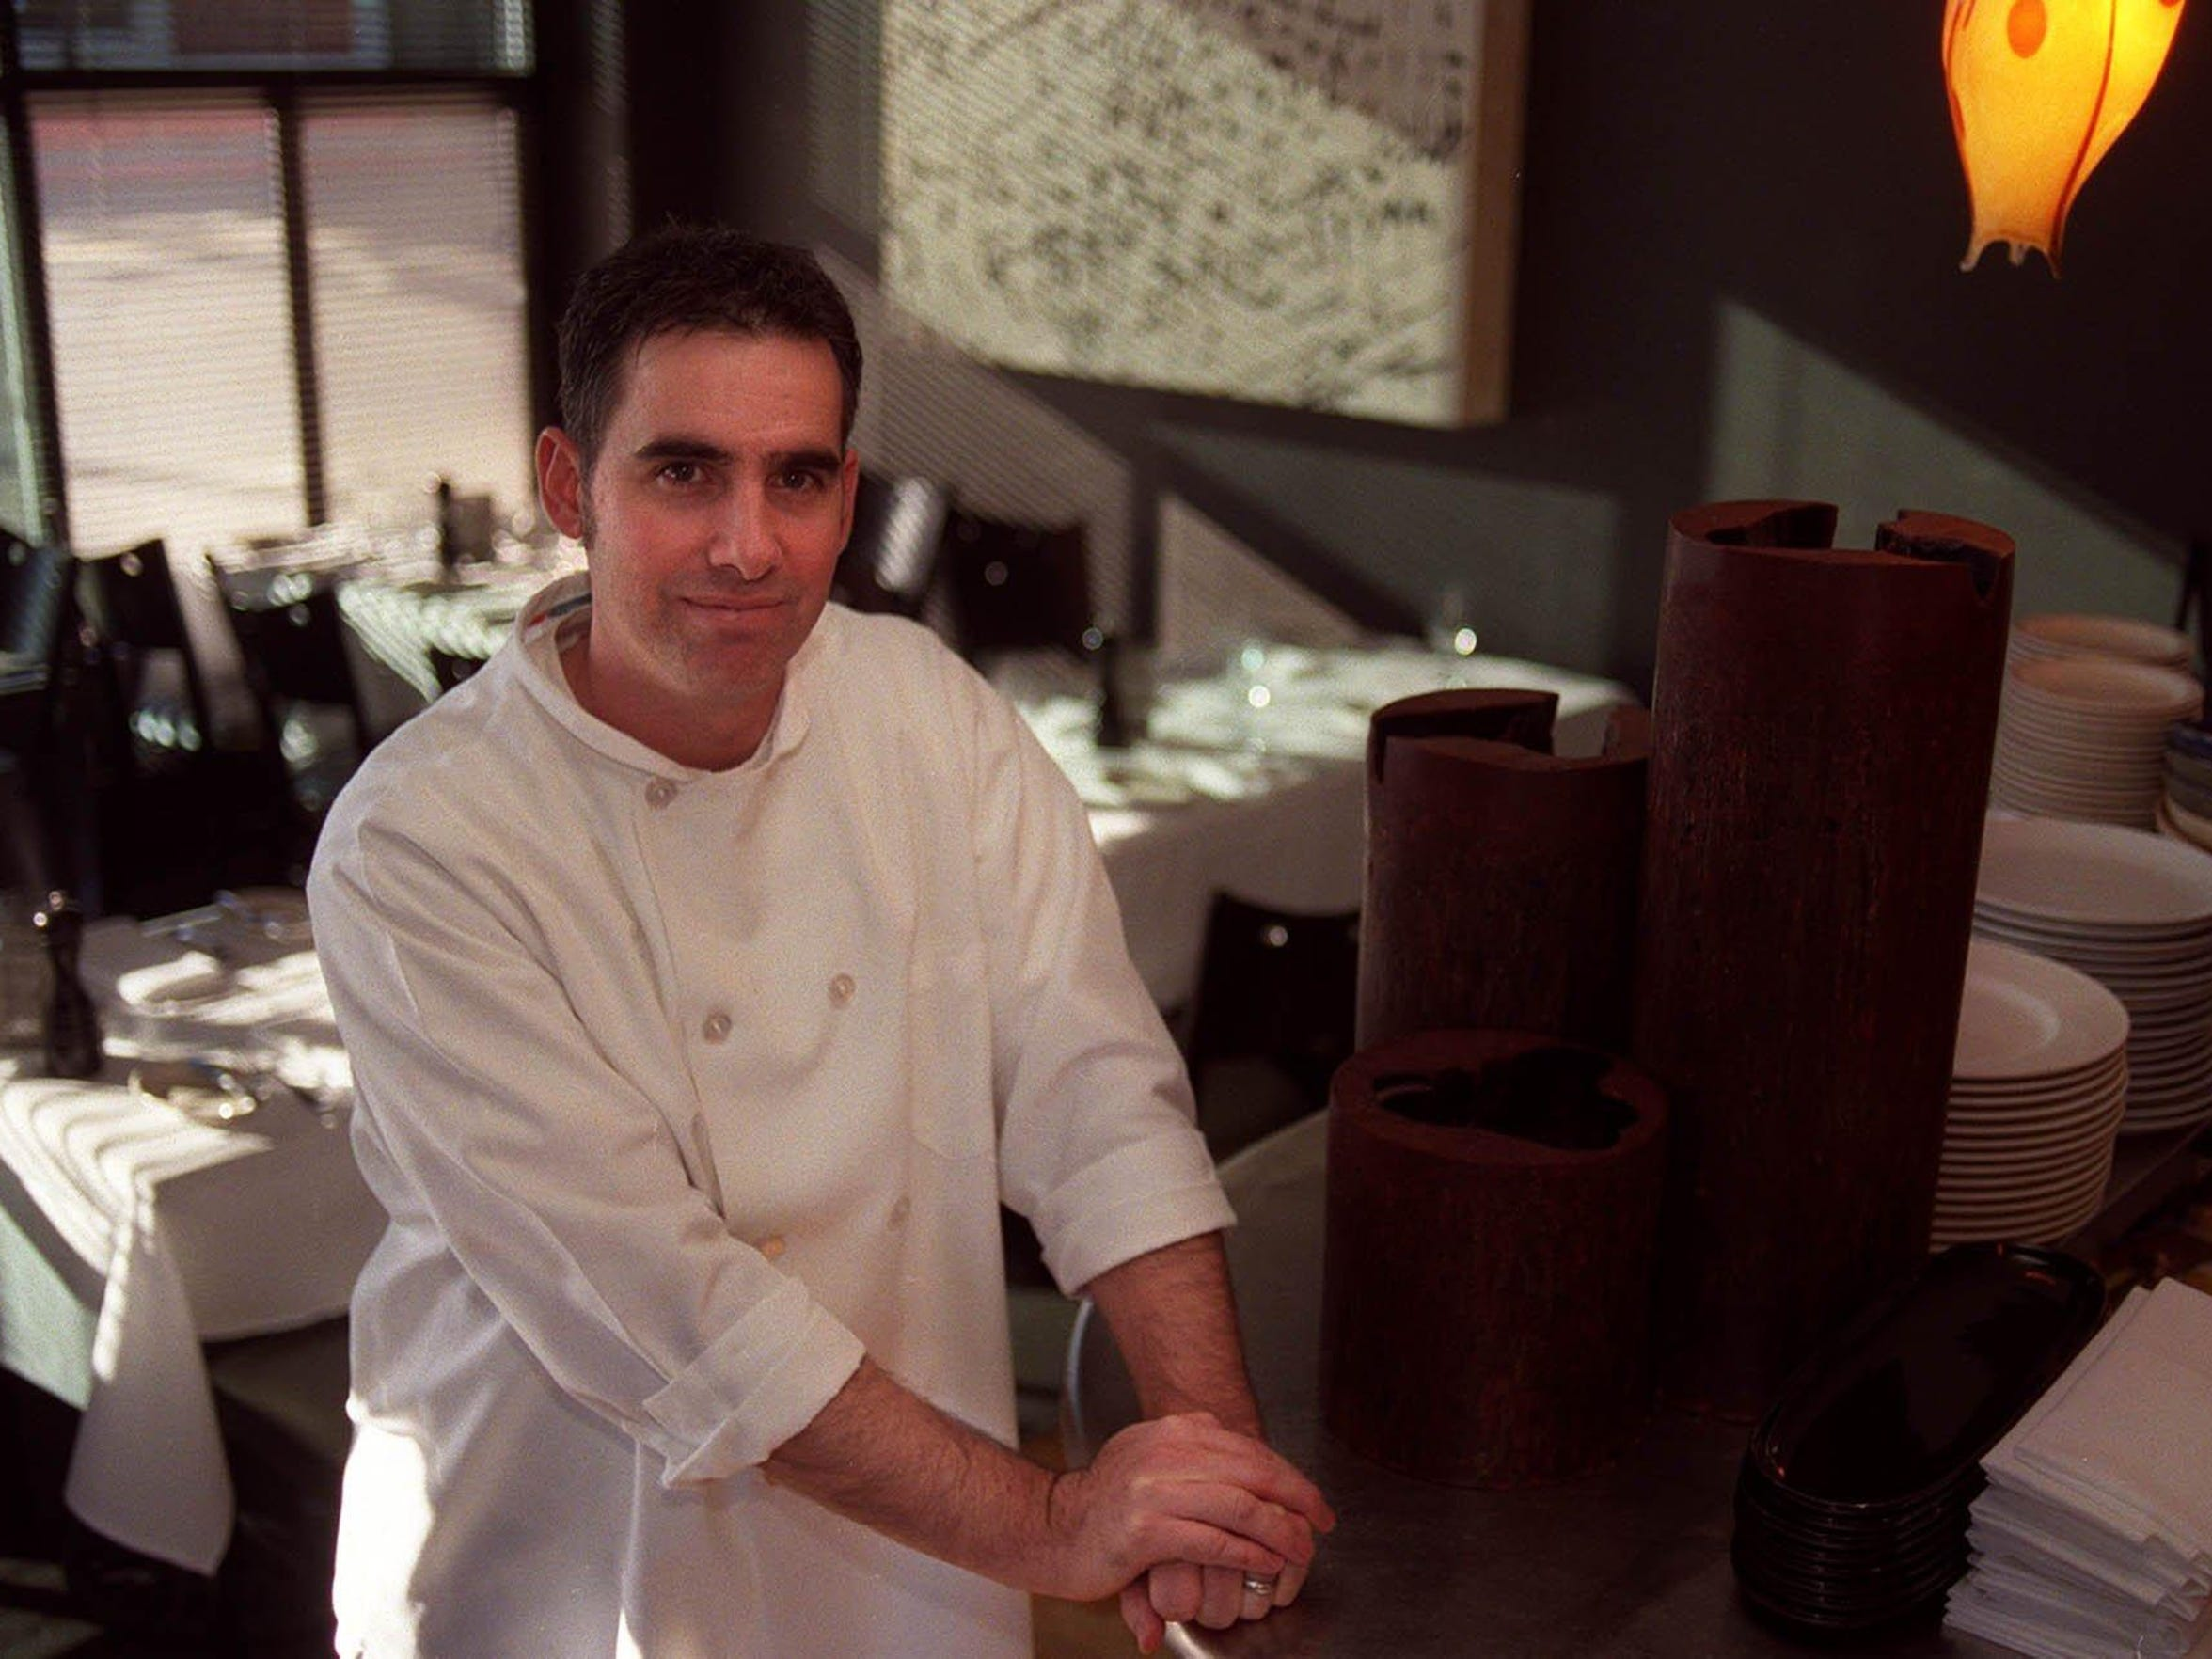 Troy Cannan, chef and co-owner of LuLou's Restaurant, said LuLou's would not have been possible without Don Carano. Cannan worked for Carano's Eldorado casino once in the 1990s and once in the 2000s.